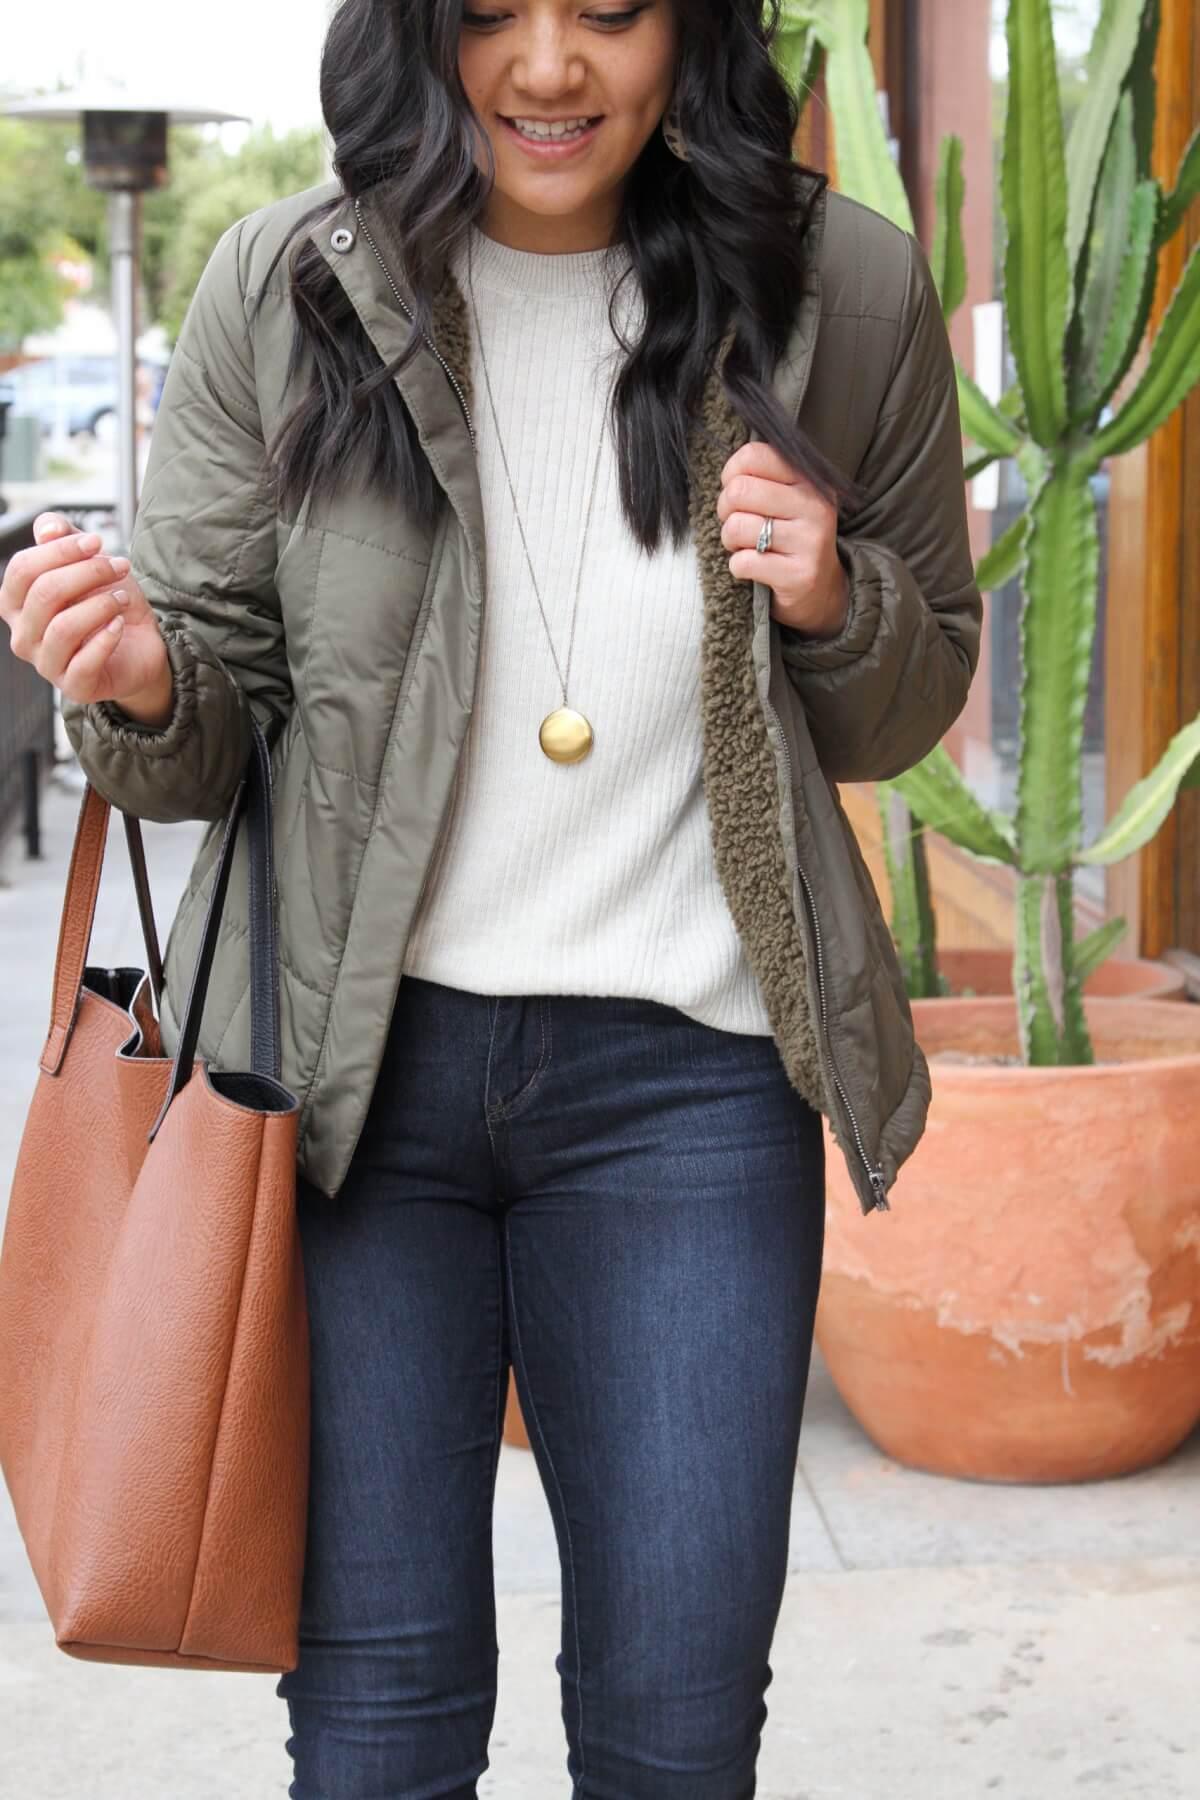 Fall Skinny Jeans Outfit: cream sweater + olive puffer jacket + tan wedge sneakers + skinny jeans + long gold circle pendant necklace + leopard leather earrings + cognac tote